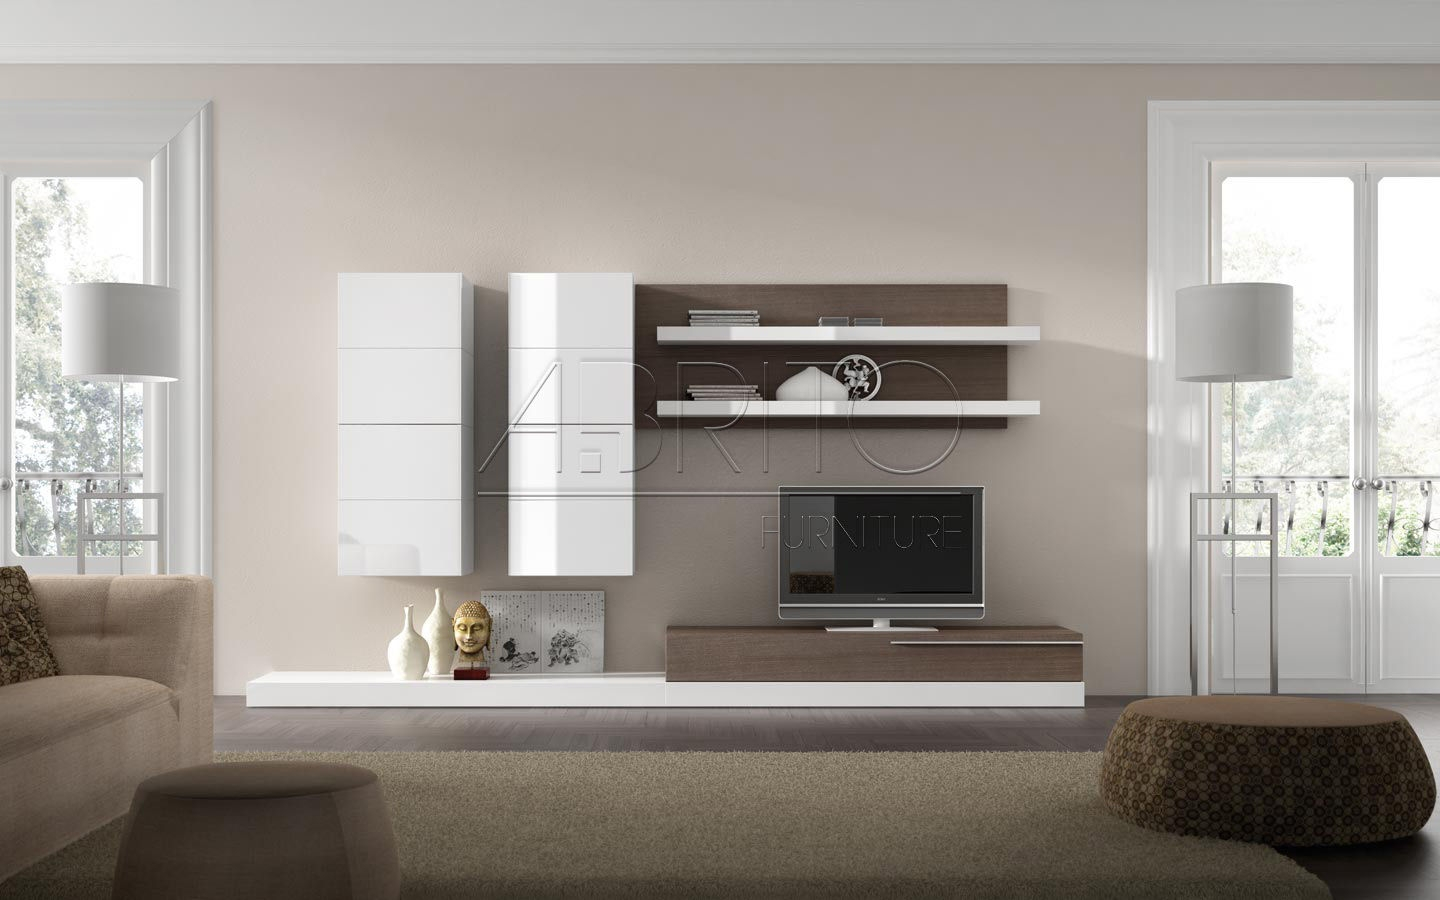 Designers Small Wall Units Cutare Google Polite De Carti With Regard To Tv Wall Units (#5 of 15)